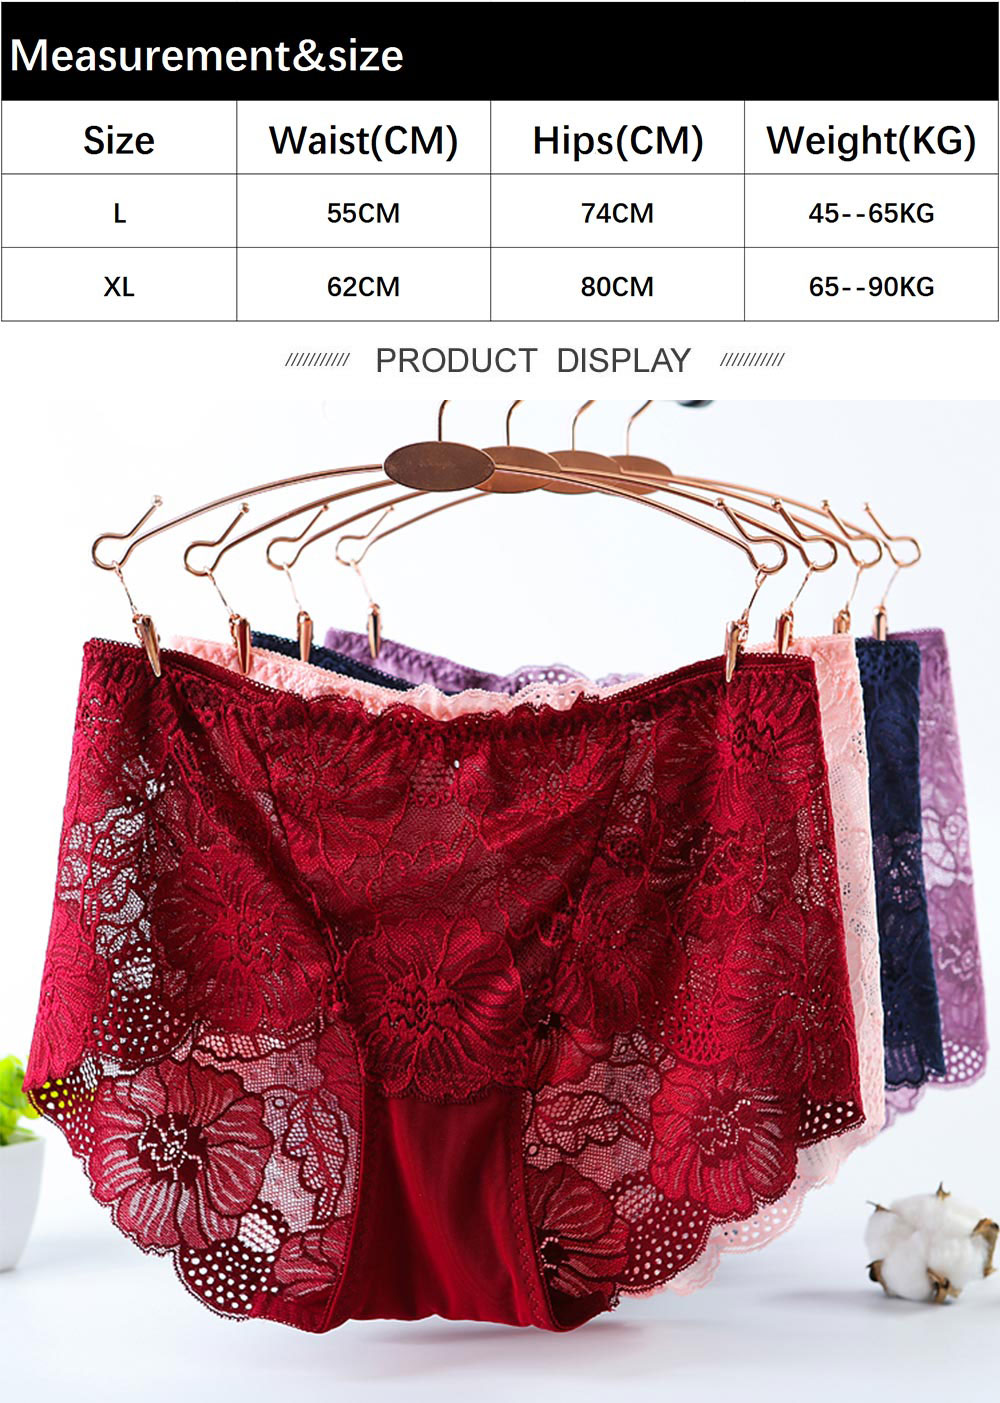 Big Size Underwear Women Panties Sexy Lace Briefs Transparent Seamless Lingerie Cotton Hollow Out High-Rise For Weight 100KG MM